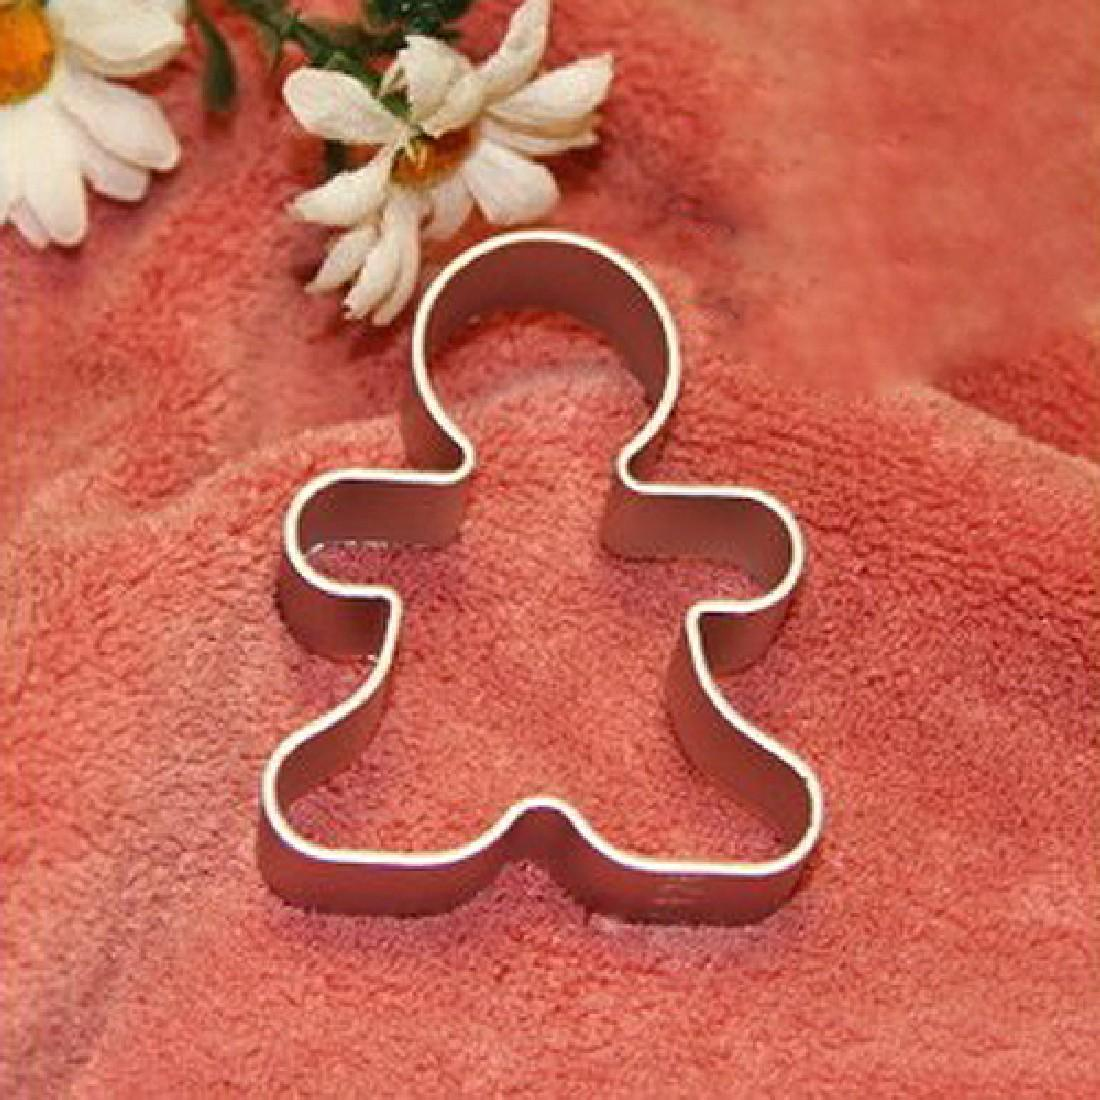 Christmas Cookie Cutter Tools Aluminium Alloy Gingerbread Men Shaped Holiday Biscuit Mold Kitchen cake Decorating Tools